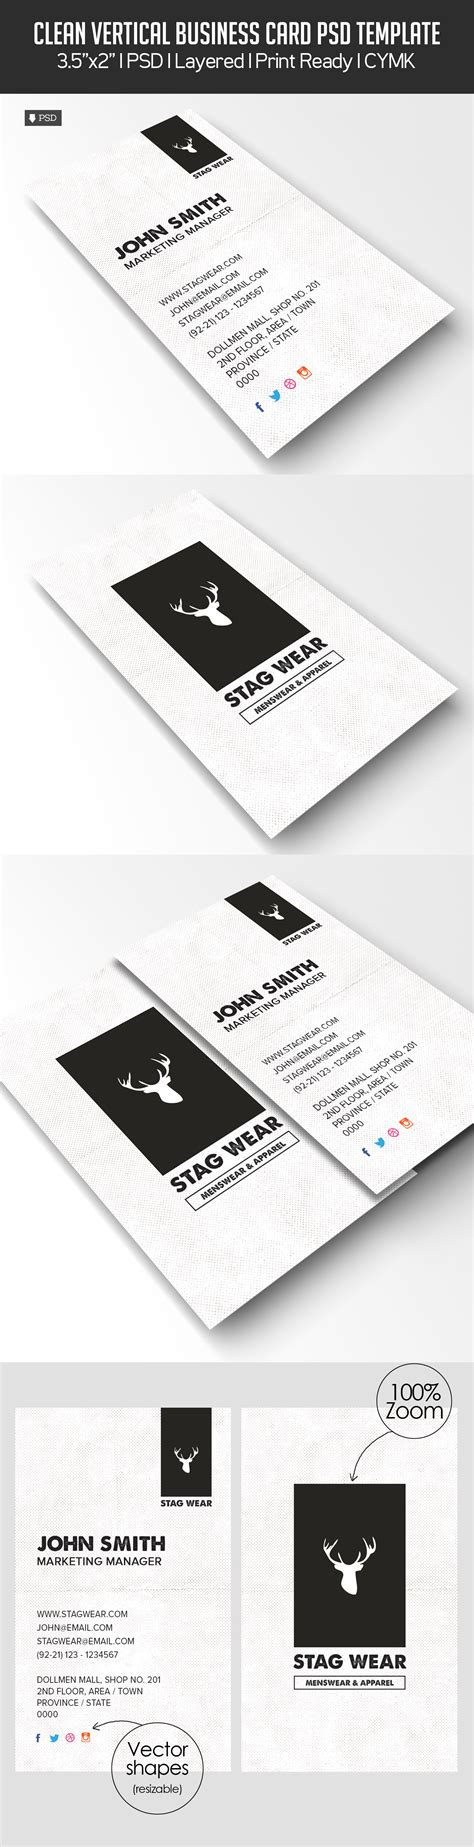 vertical business card template free freebie vertical business card psd template freebies